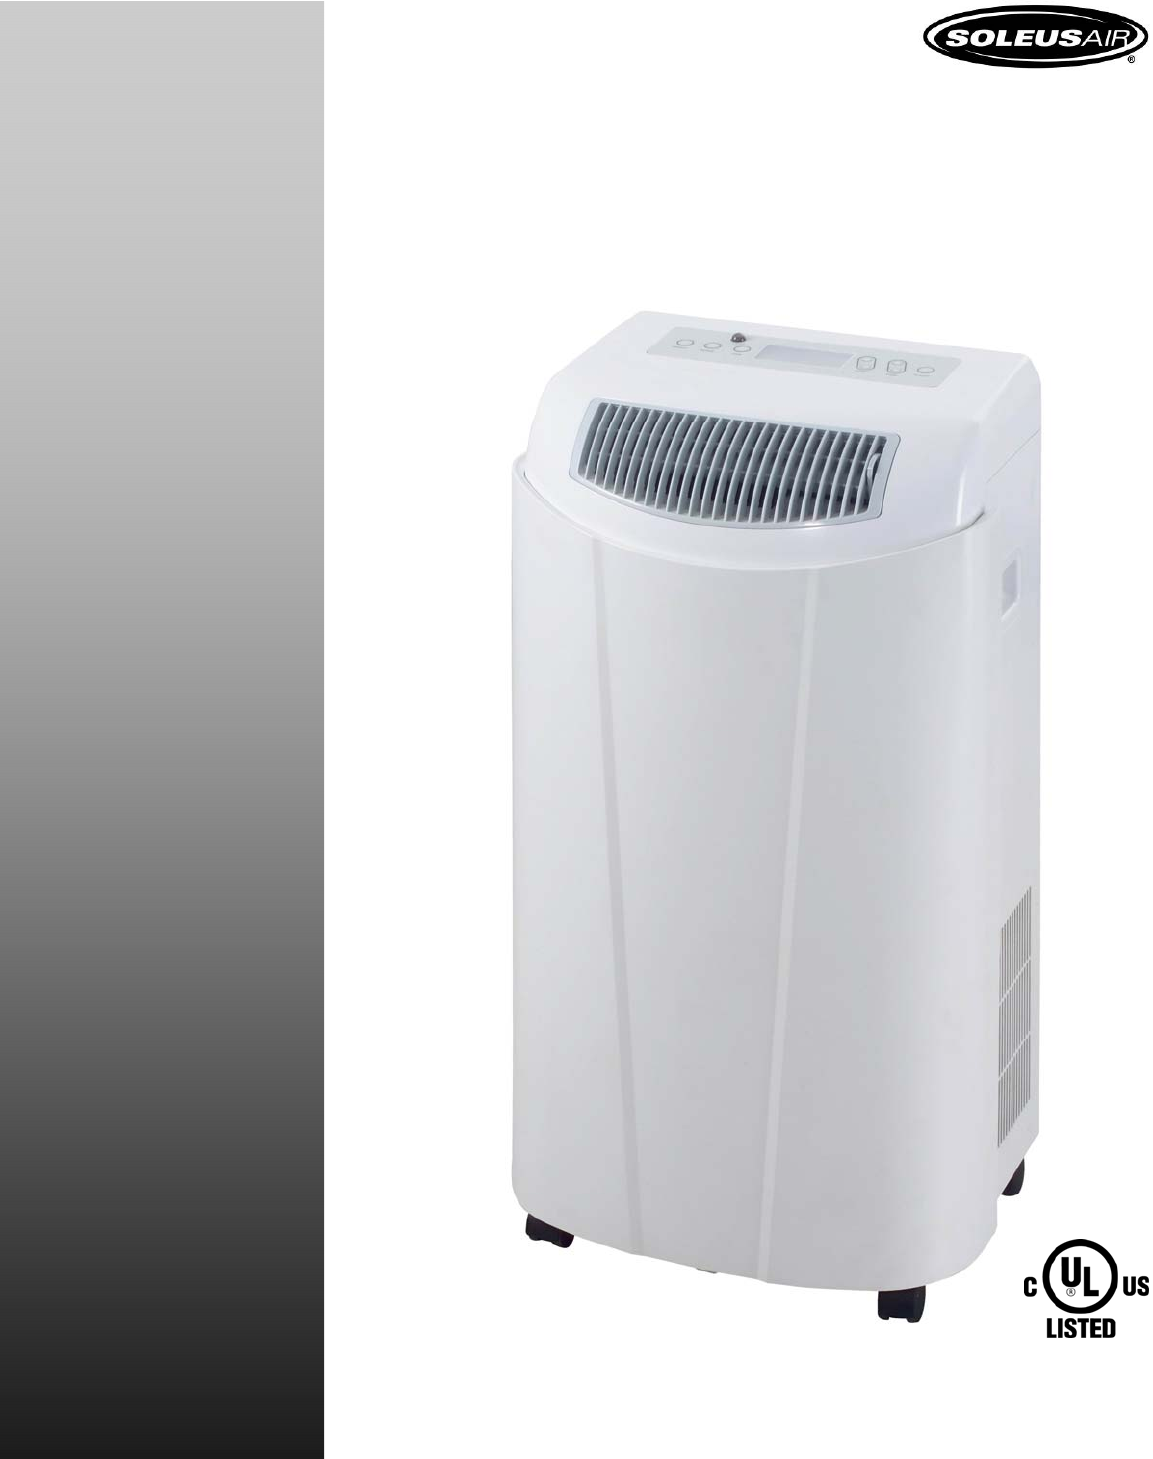 aux portable air conditioner user manual